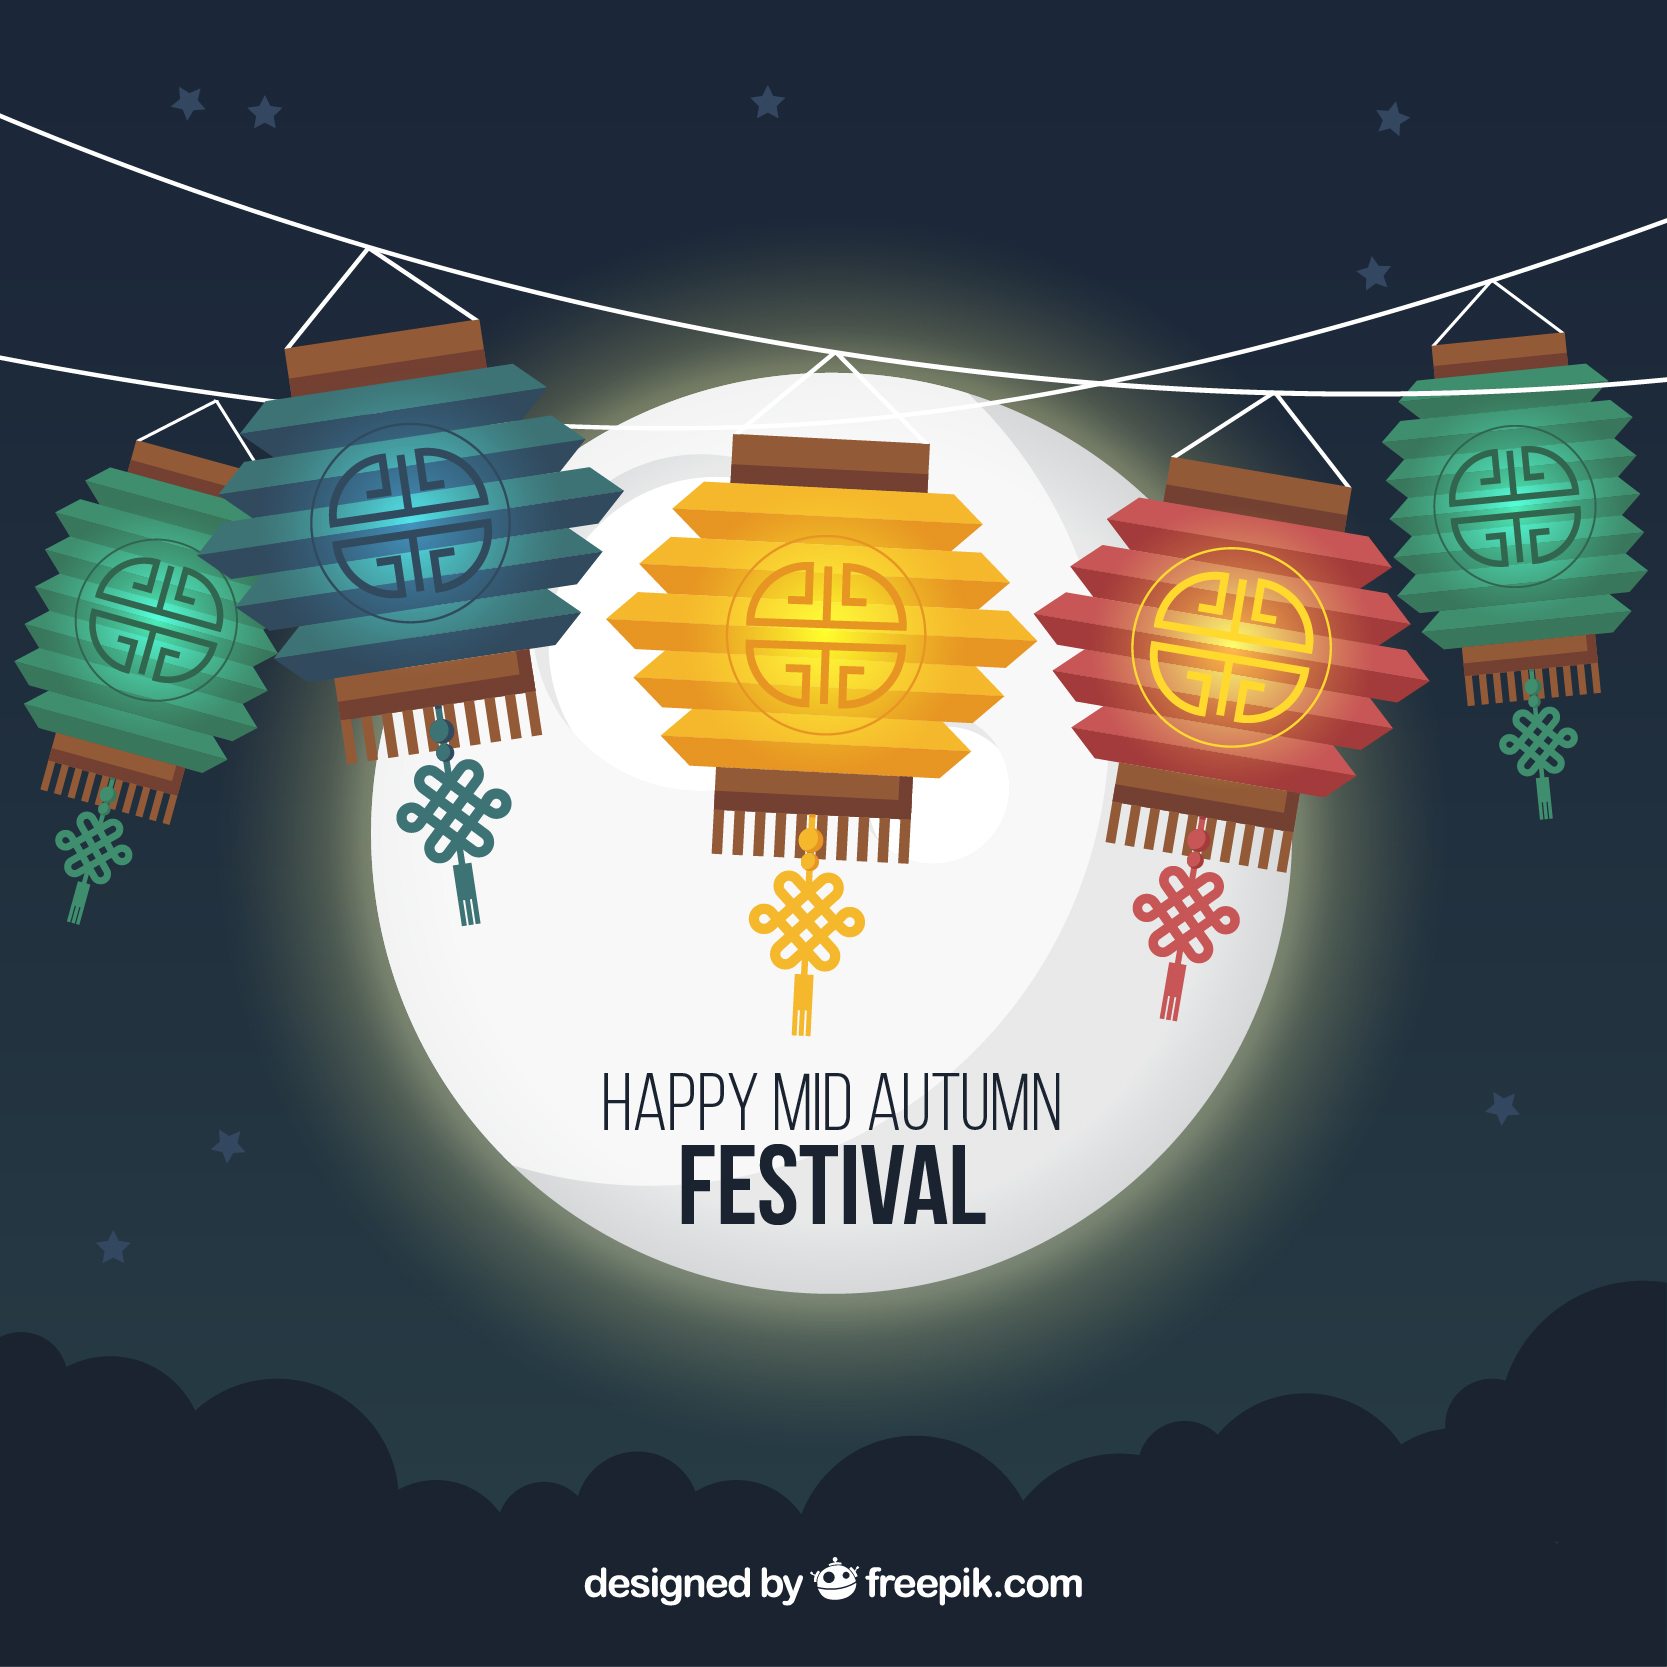 2018 Bank Holidays In Hk: Happy Mid-Autumn Festival!